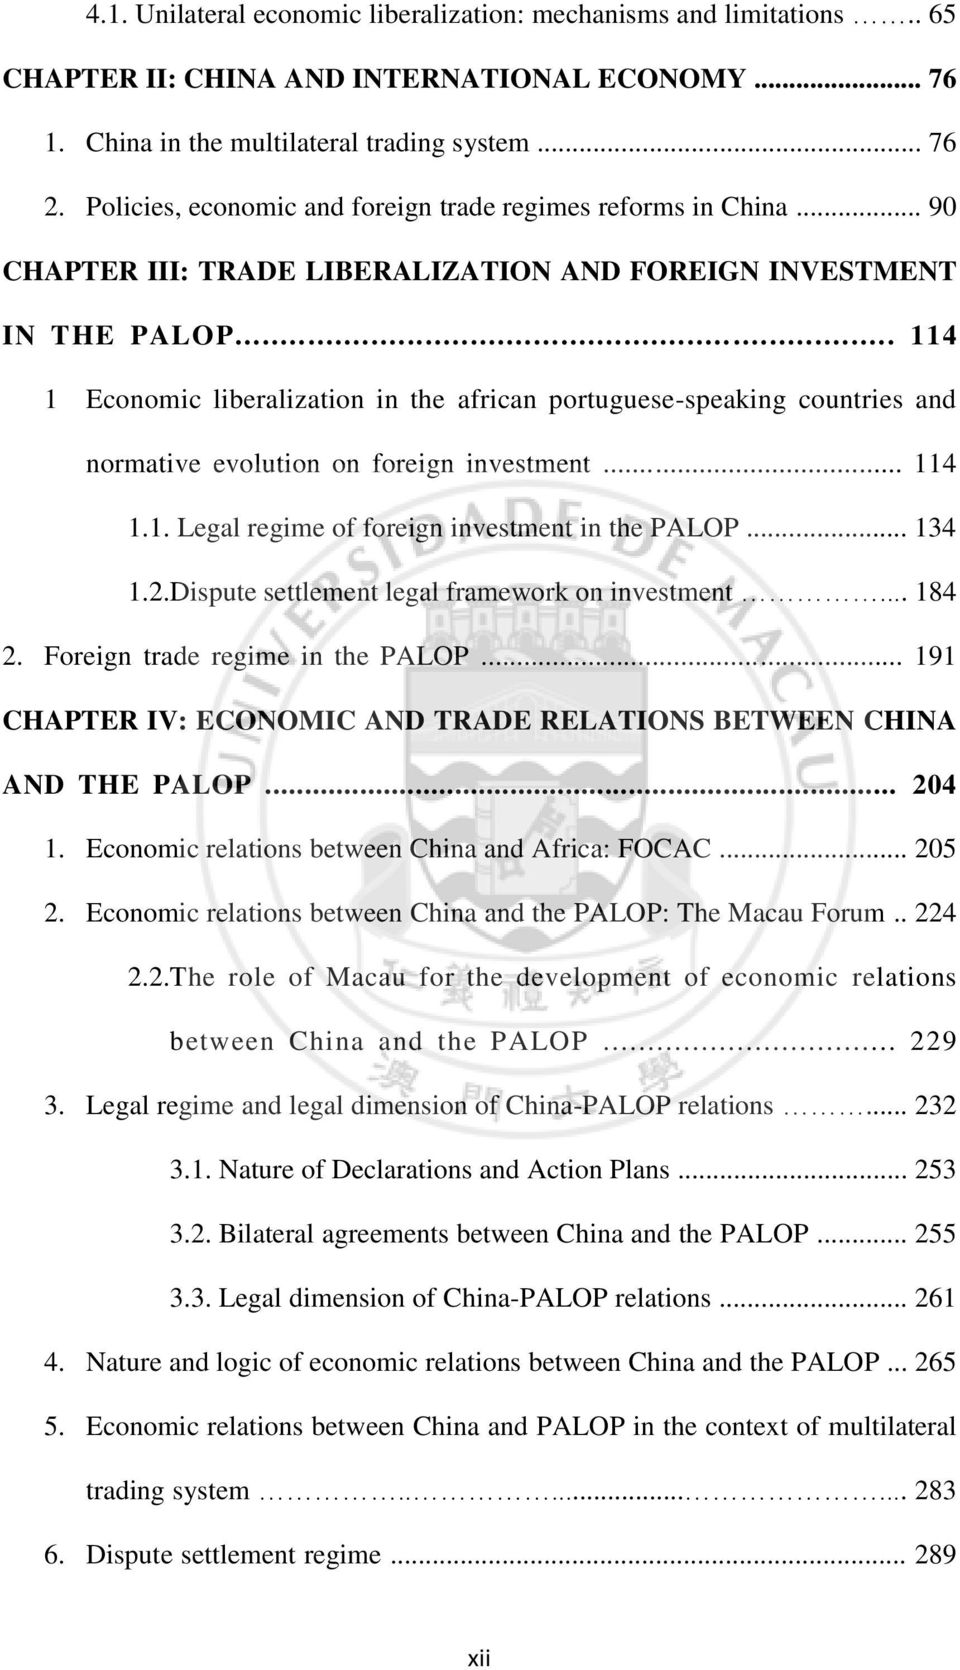 ..... 114 1 Economic liberalization in the african portuguese-speaking countries and normative evolution on foreign investment... 114 1.1. Legal regime of foreign investment in the PALOP... 134 1.2.